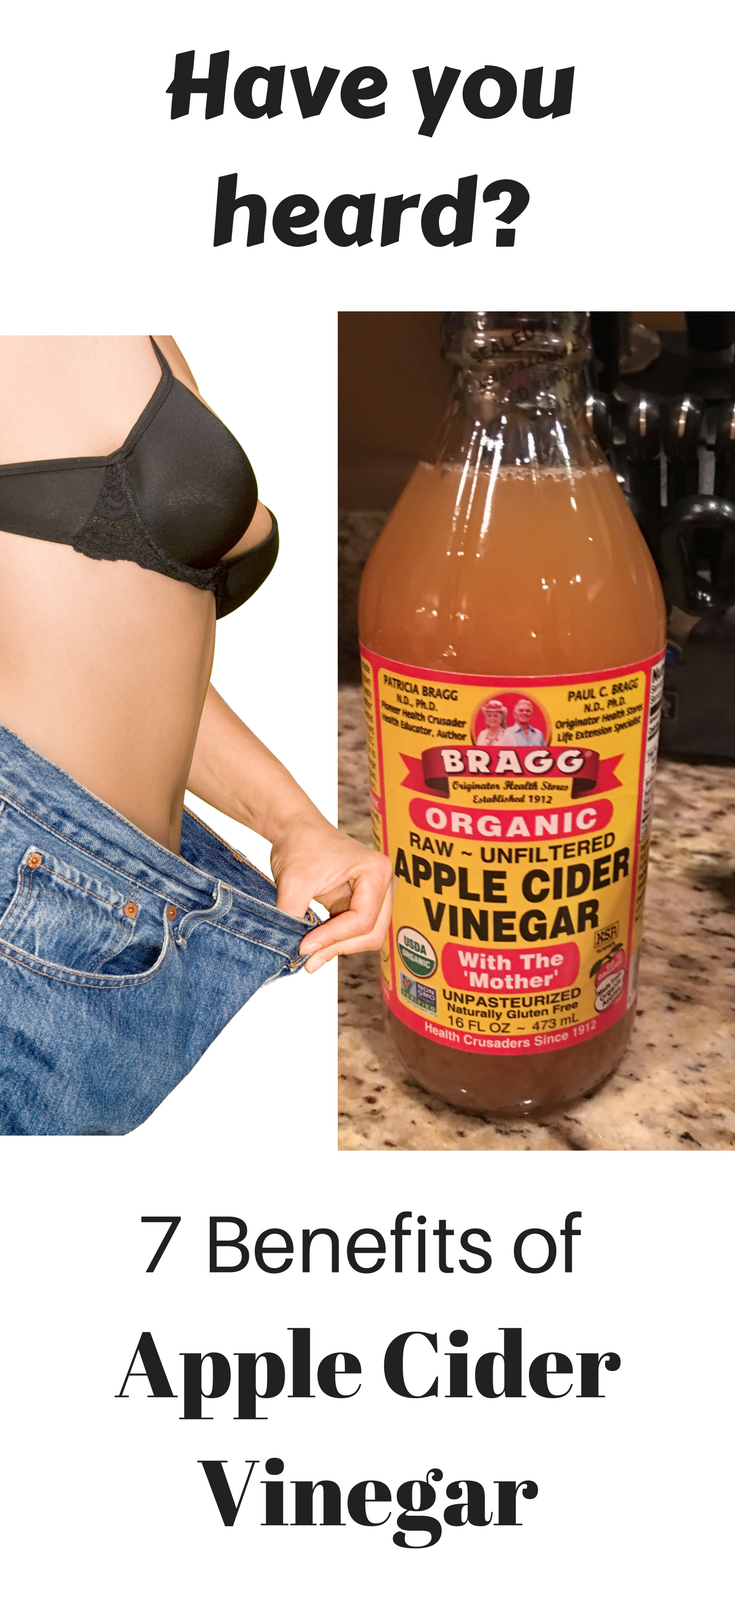 Best way to detox and lose weight picture 9